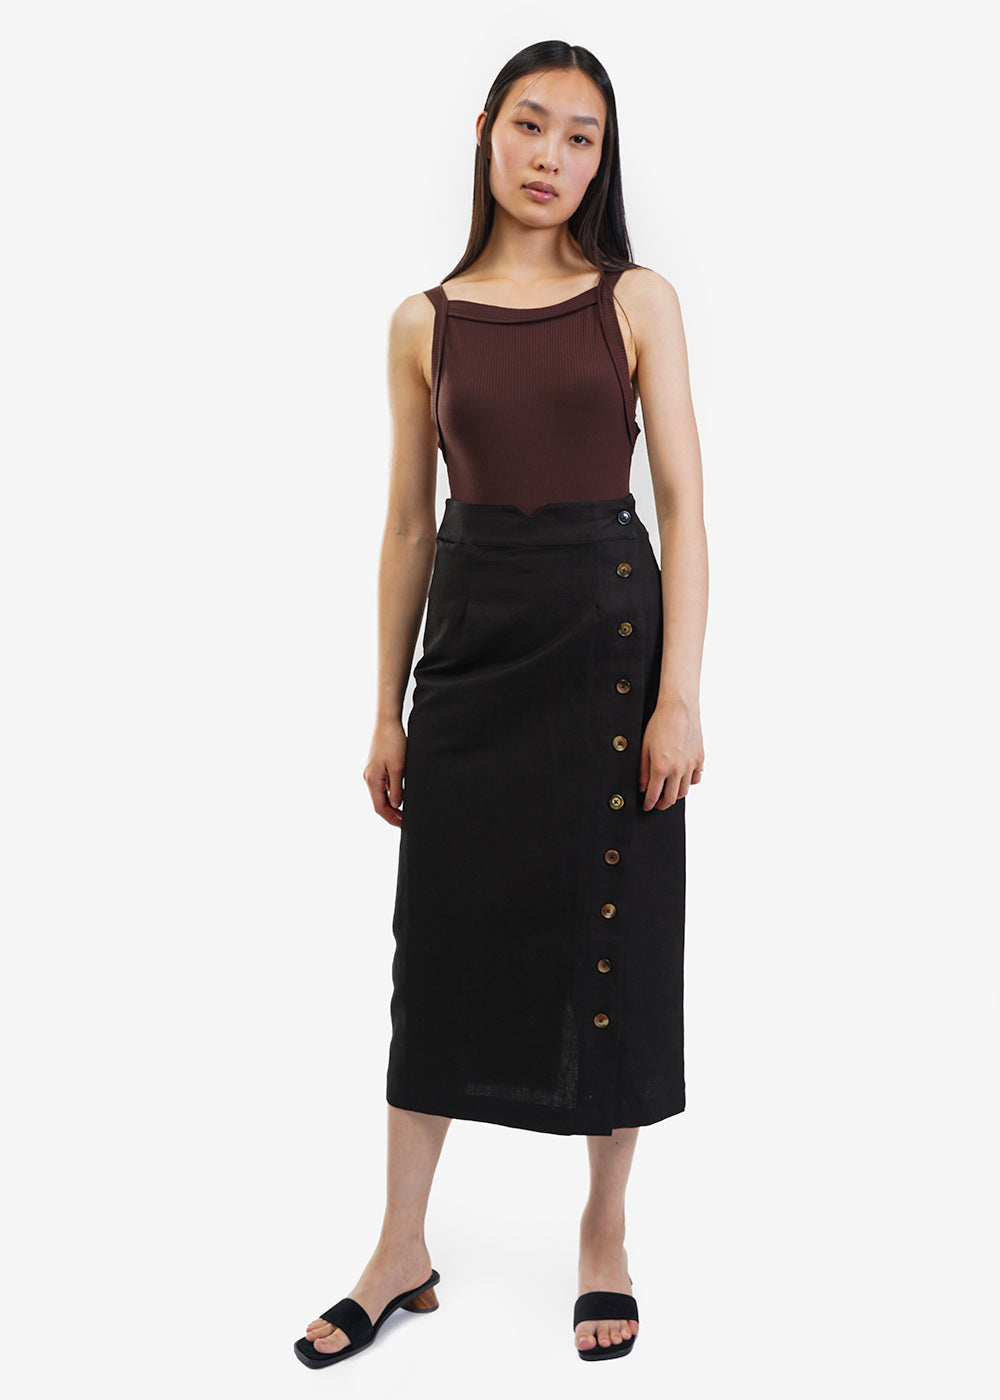 Ajaie Alaie Ink Transitional Skirt — New Classics Studios